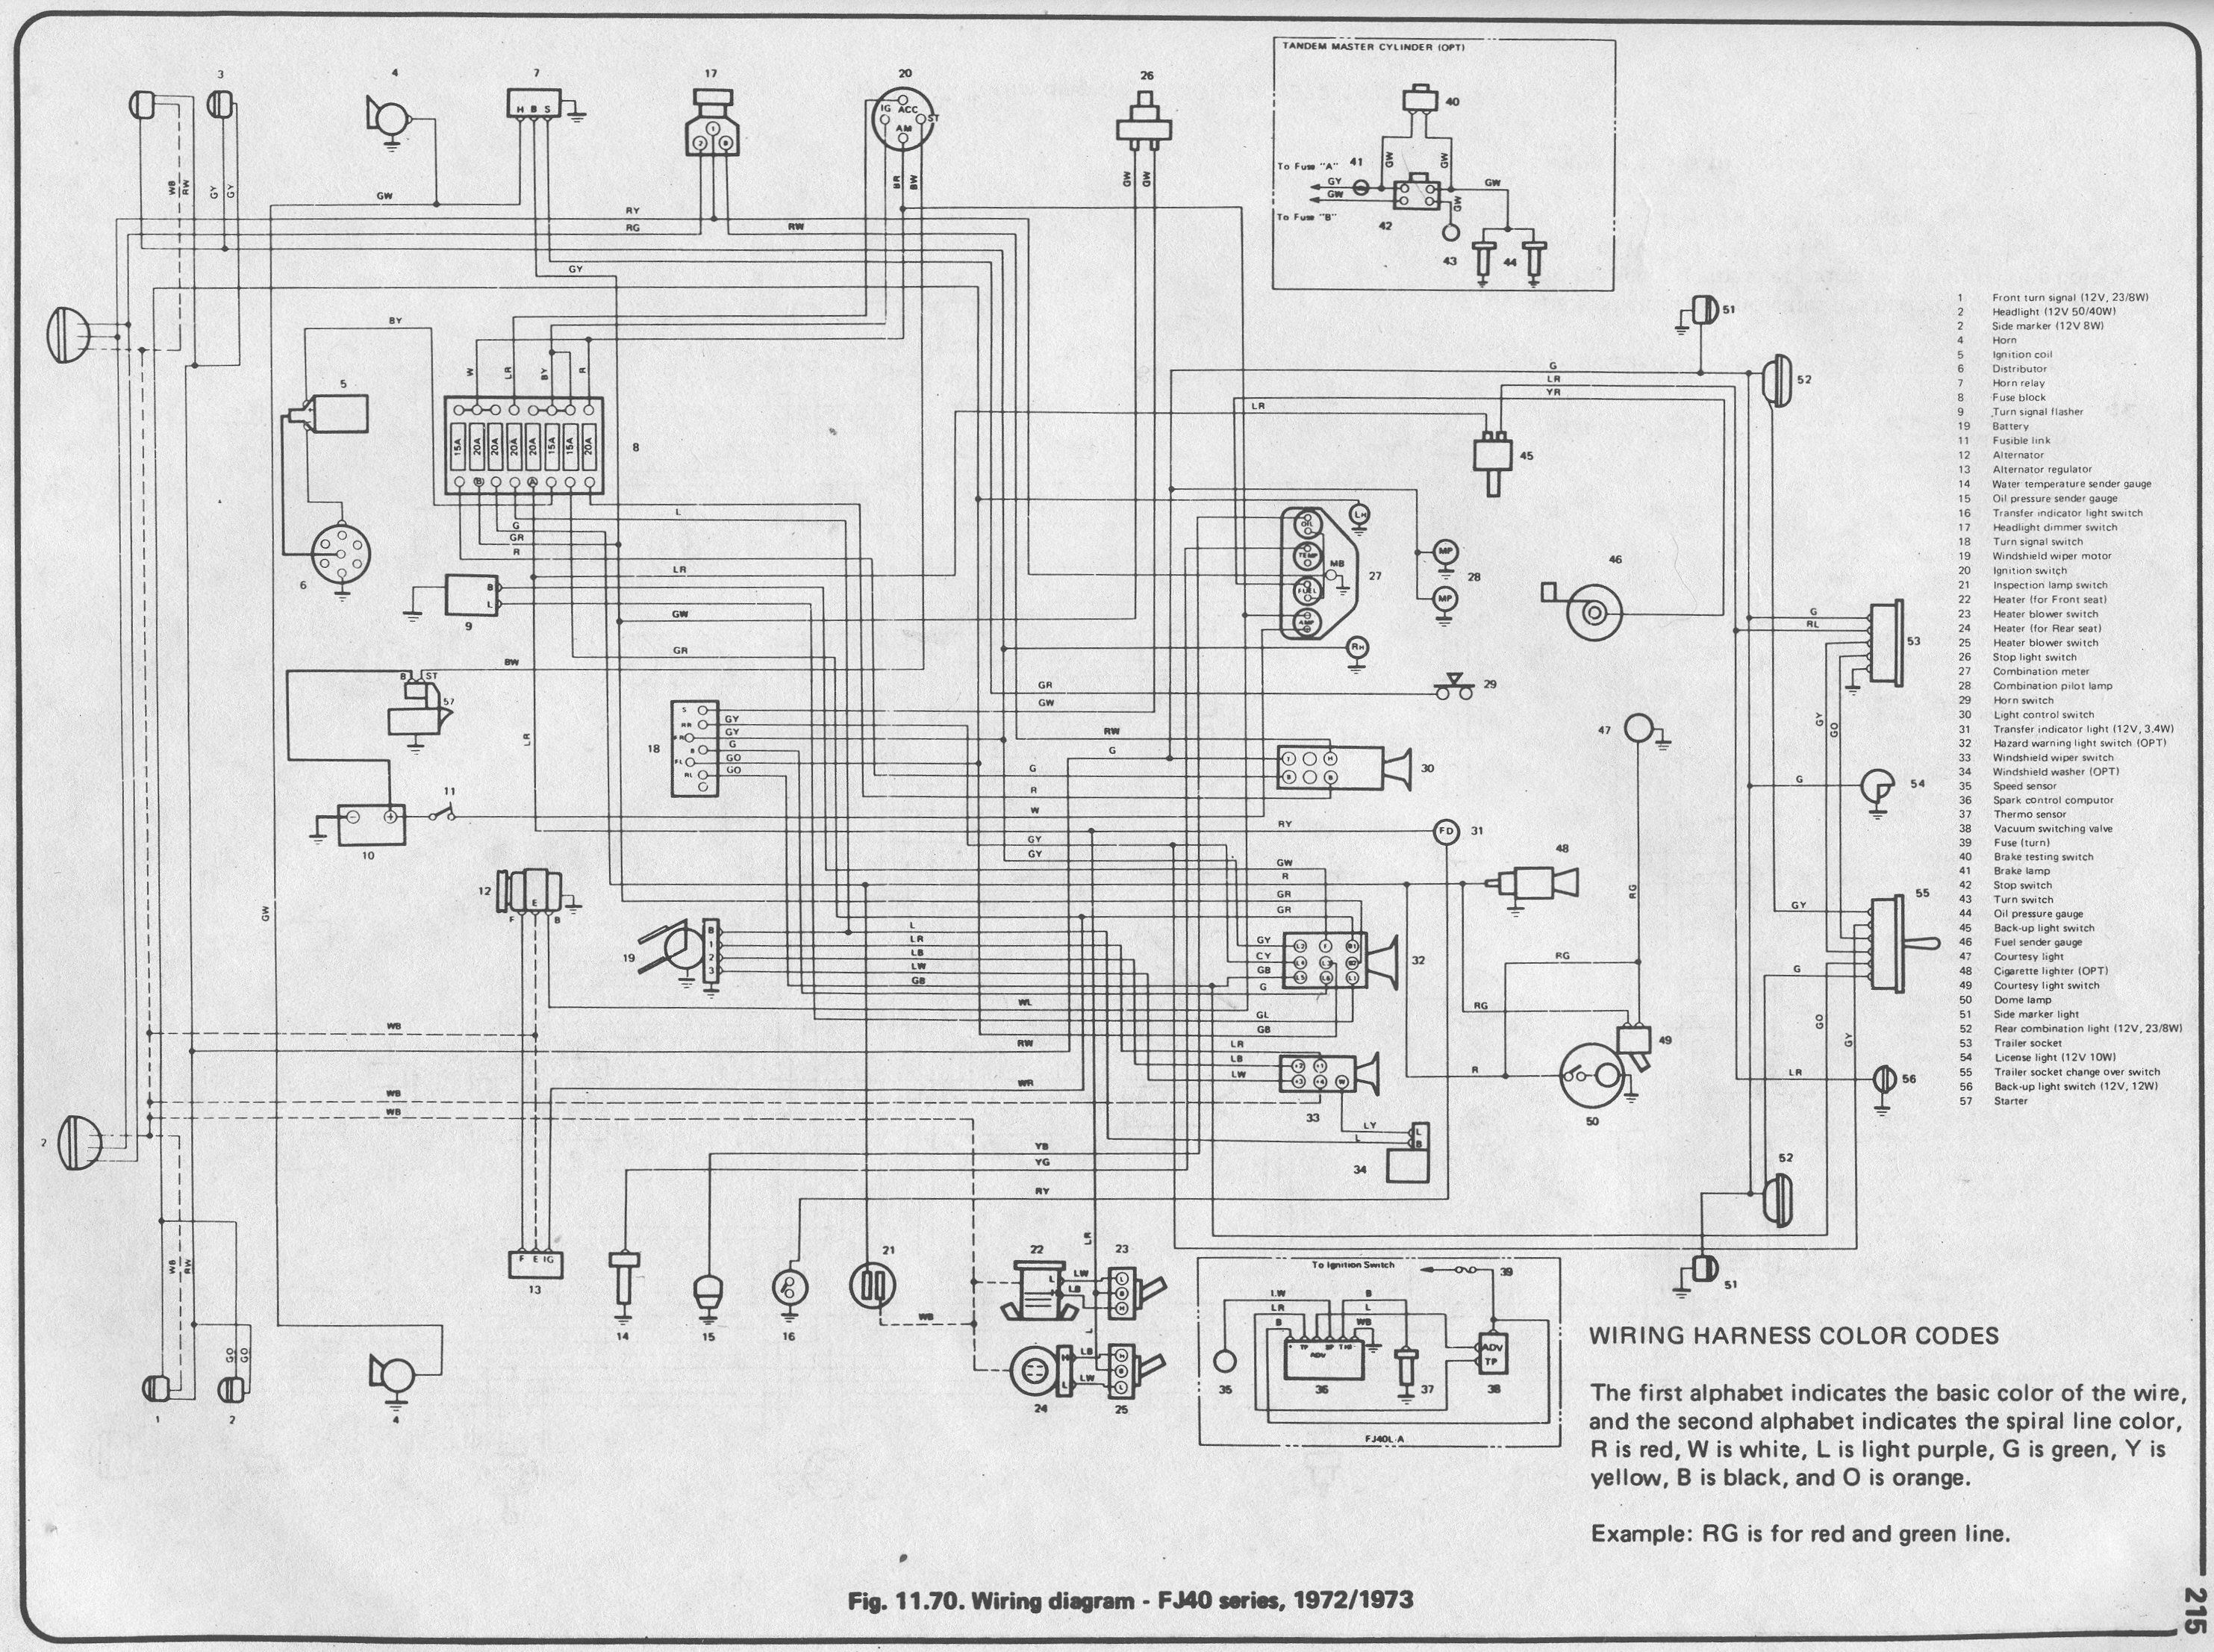 Haynes1973FJ40 fj40 wiring diagram 1973 fj40 wiring \u2022 wiring diagrams j squared co  at bayanpartner.co